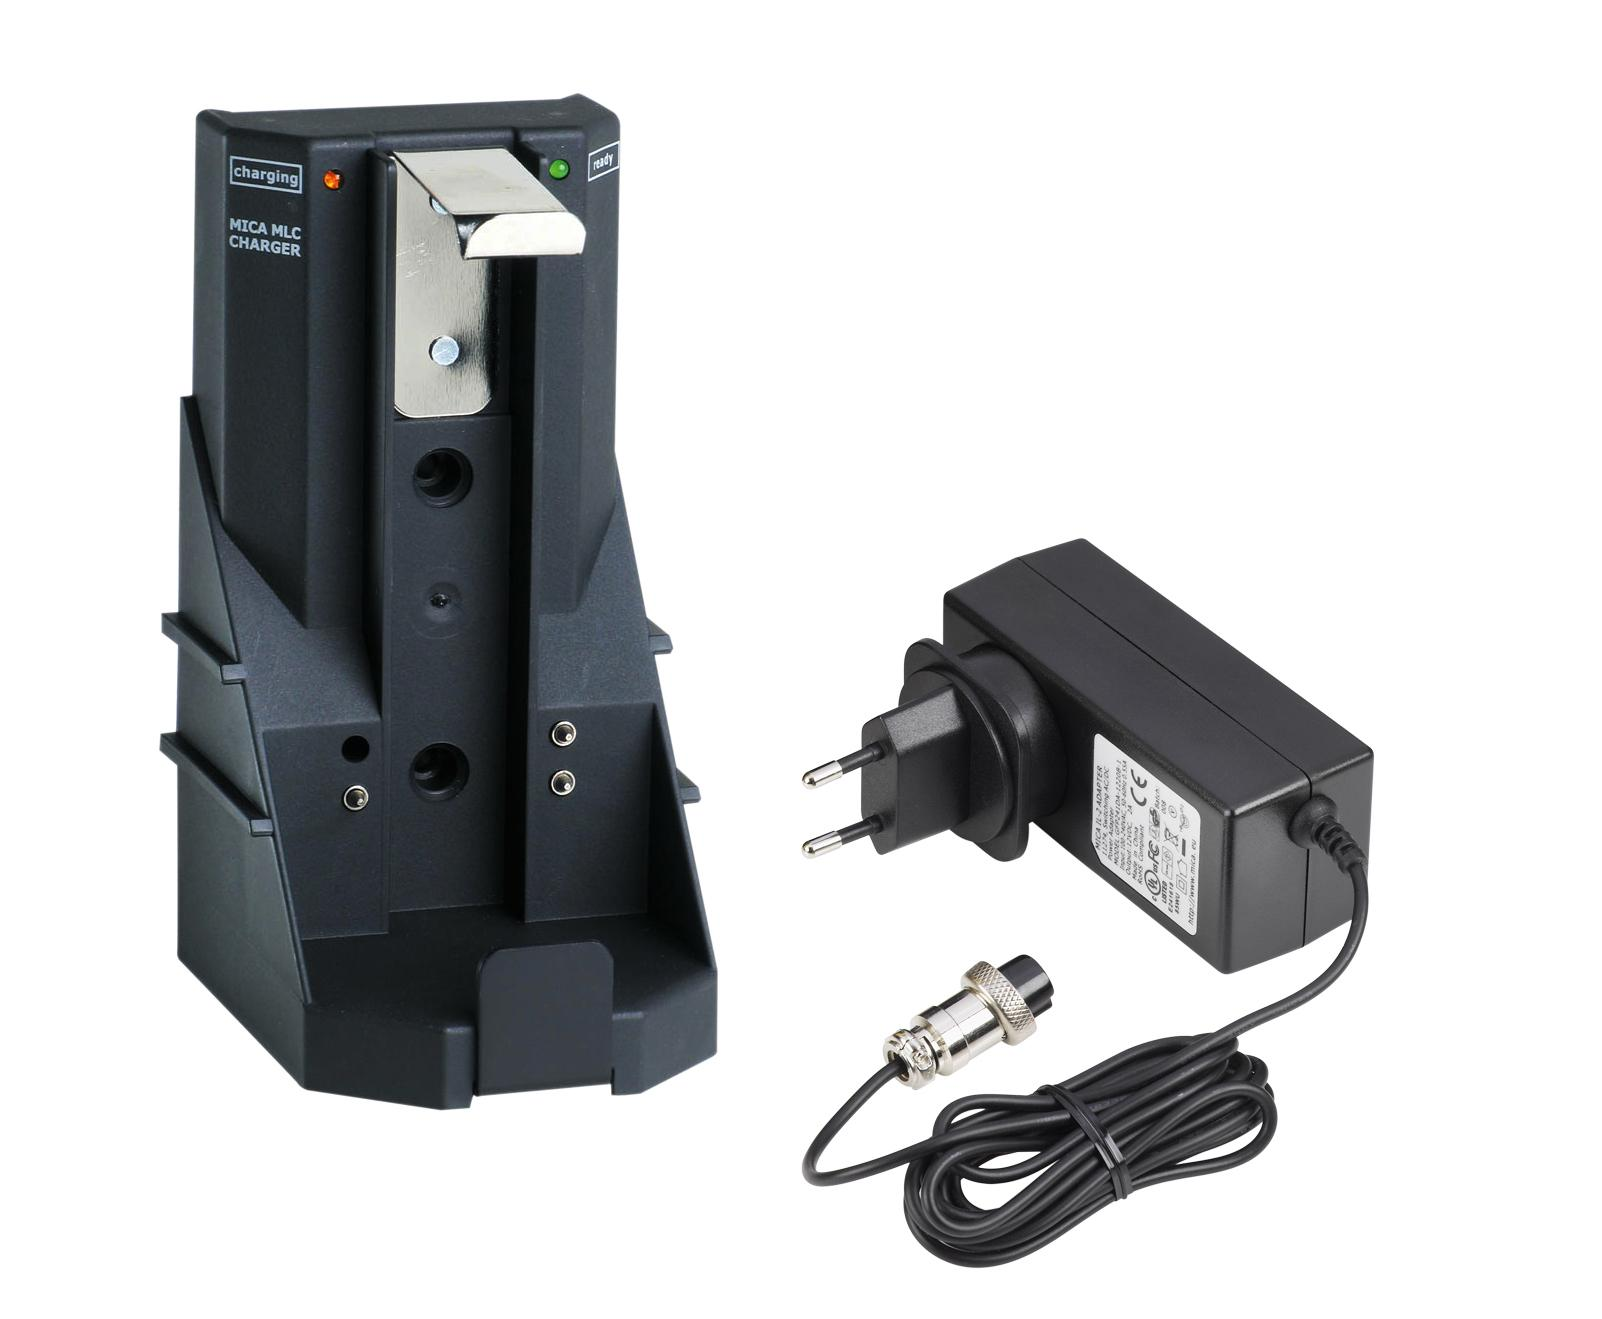 MICA IL-2 mains adapter and MLC fast charger